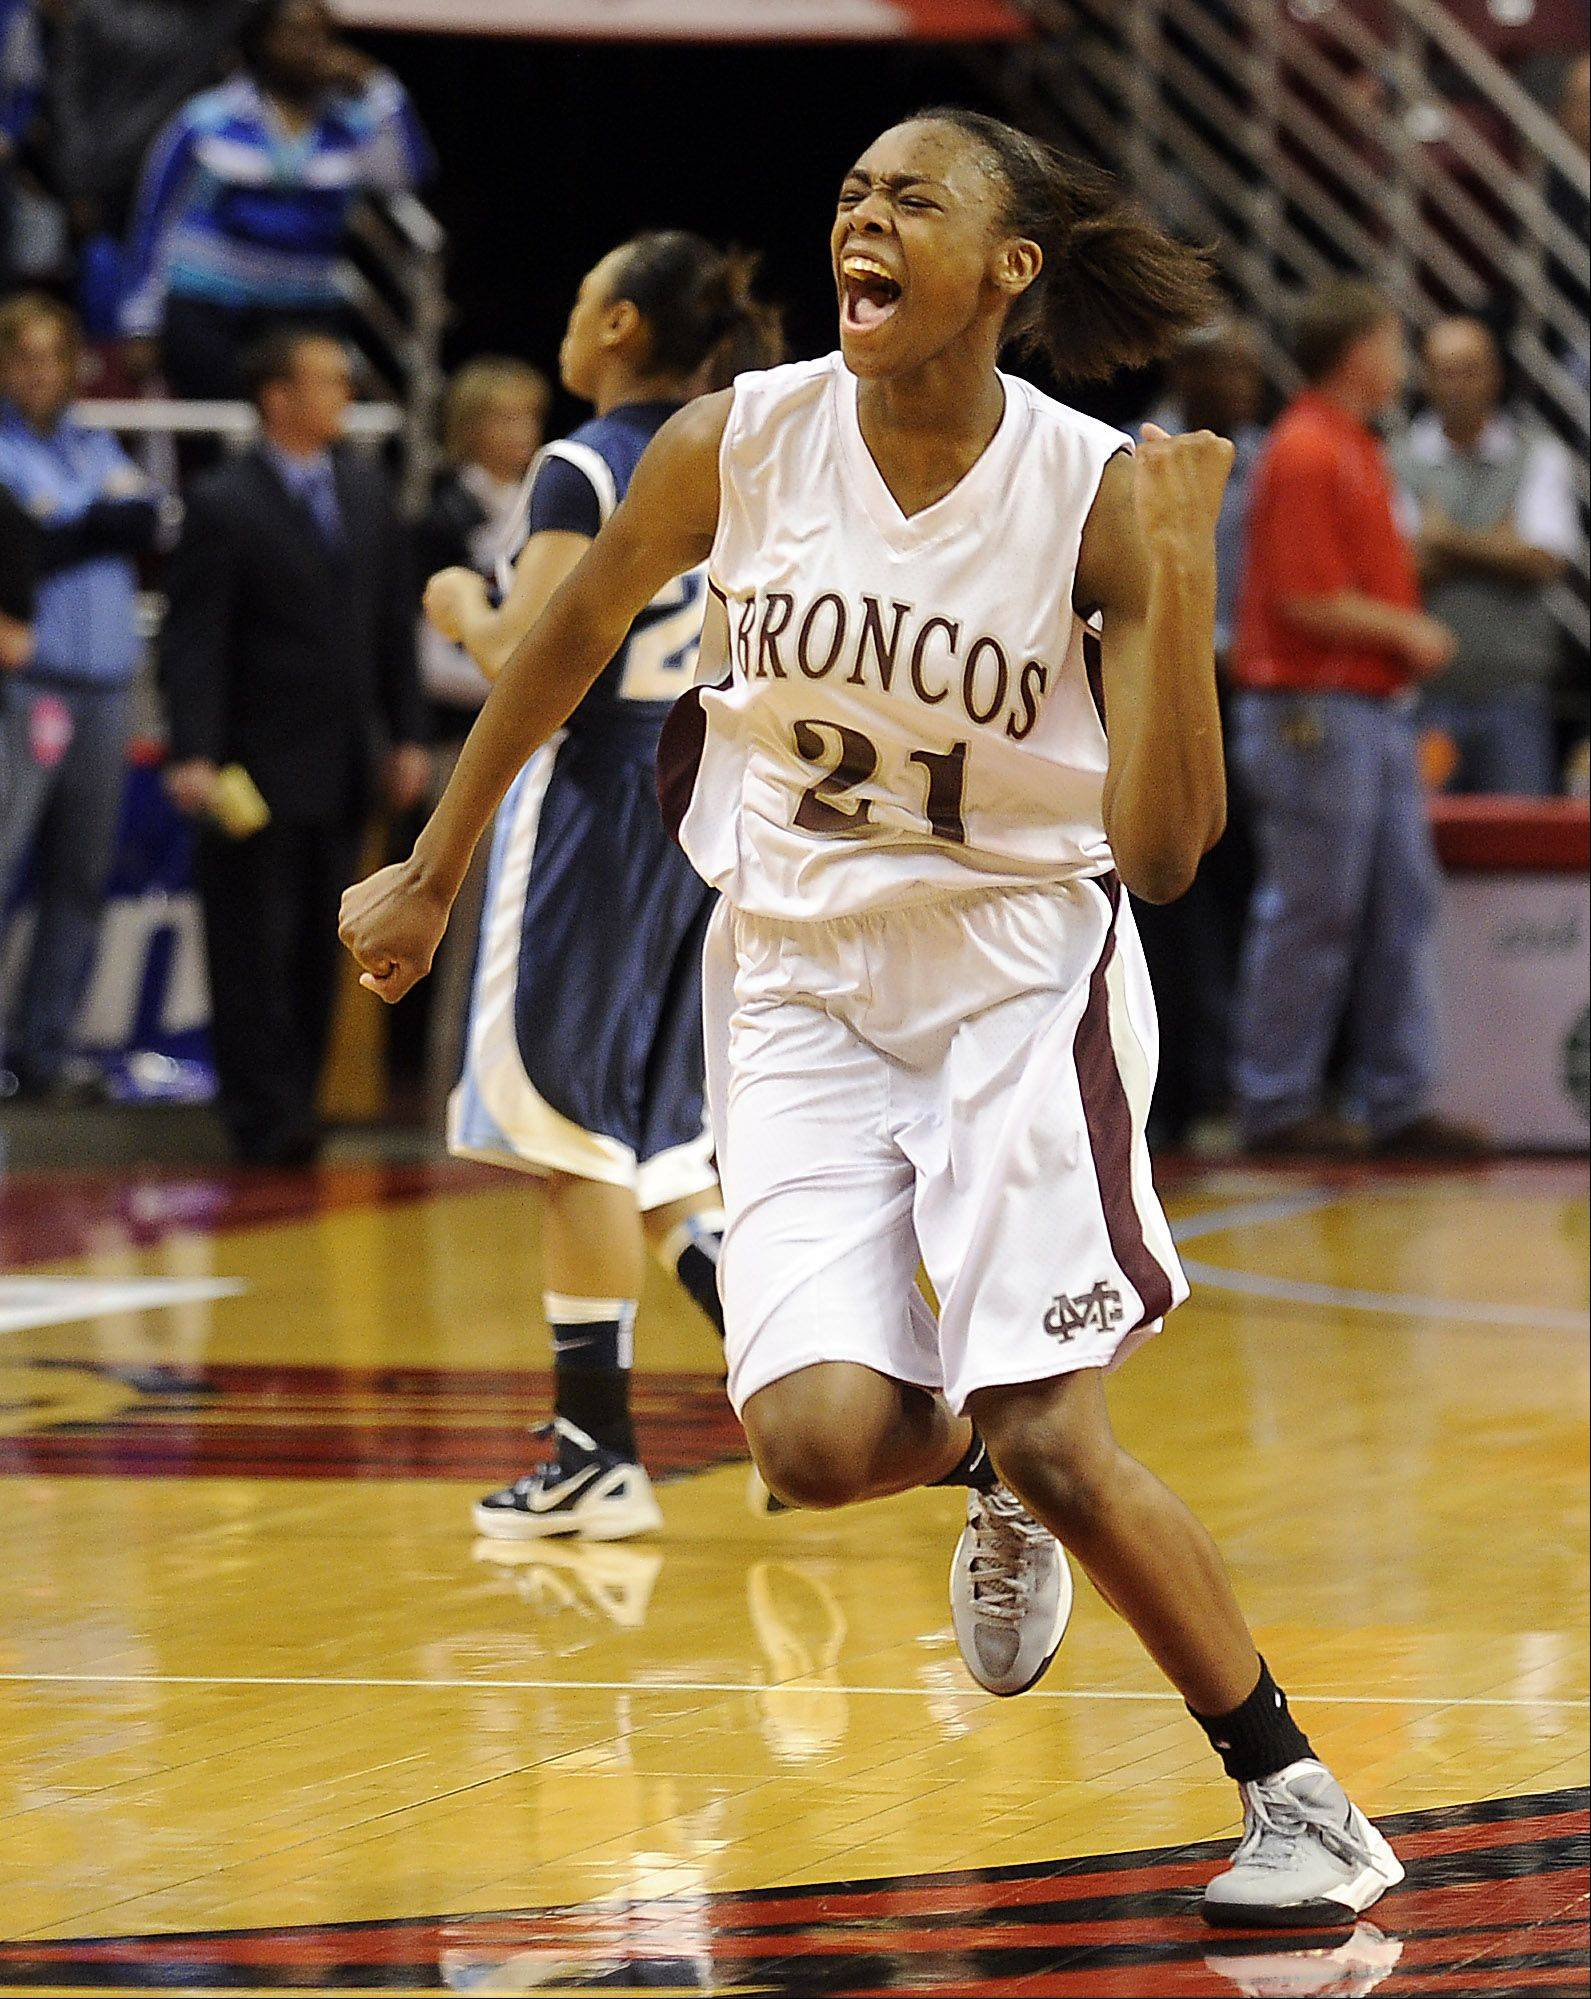 Montini's Jasmine Lumpkin celebrates their victory over Hillcrest in the 2012 IHSA Class 3A Girls Basketball Tournament in Normal, Illinois on Friday.